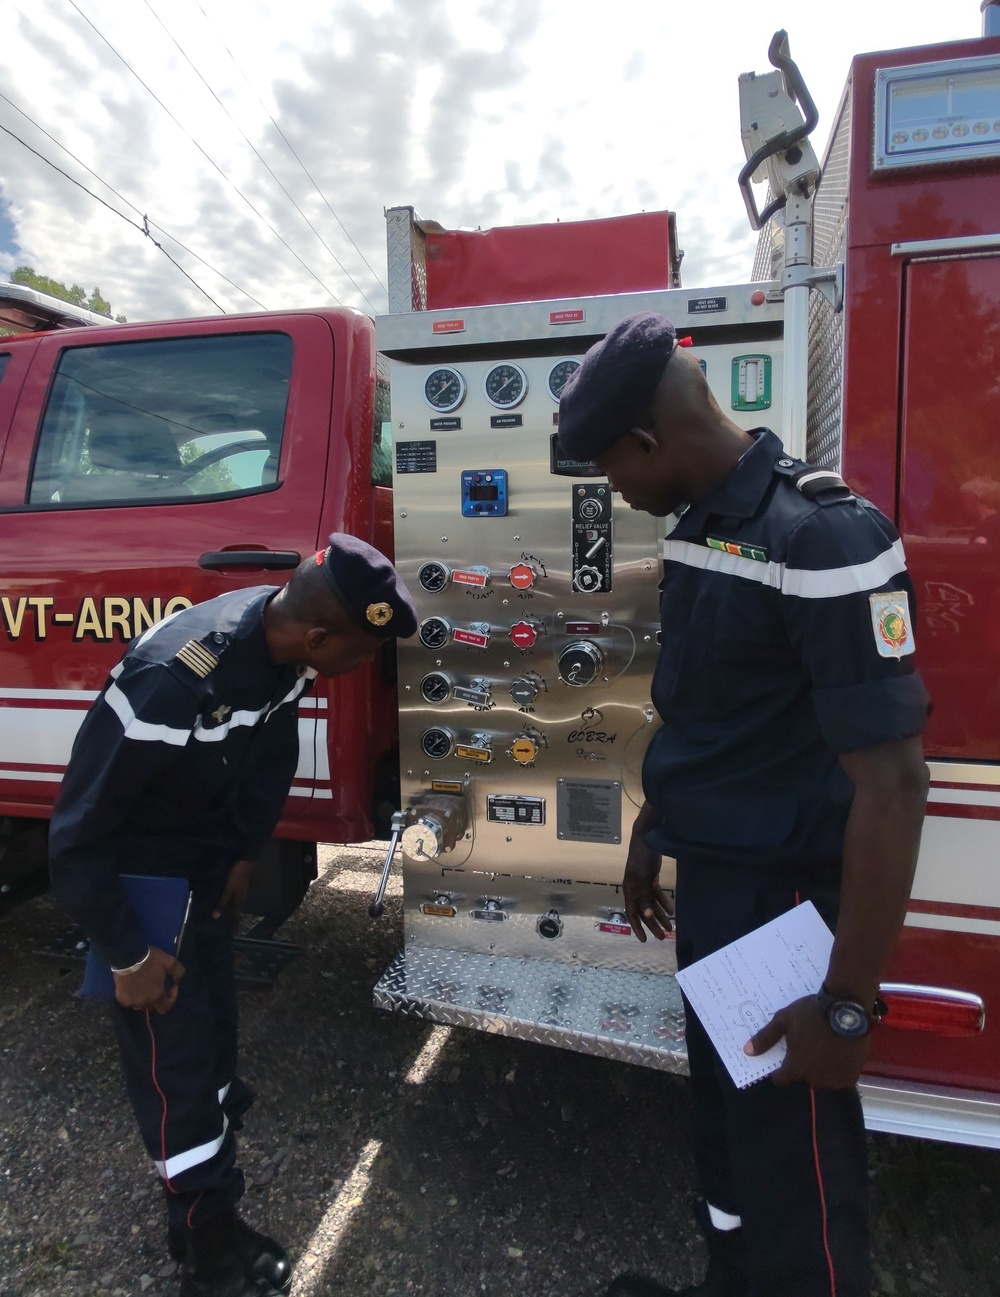 Team from Senegal's National Fire Brigade in Vermont for emergency capability demonstrations